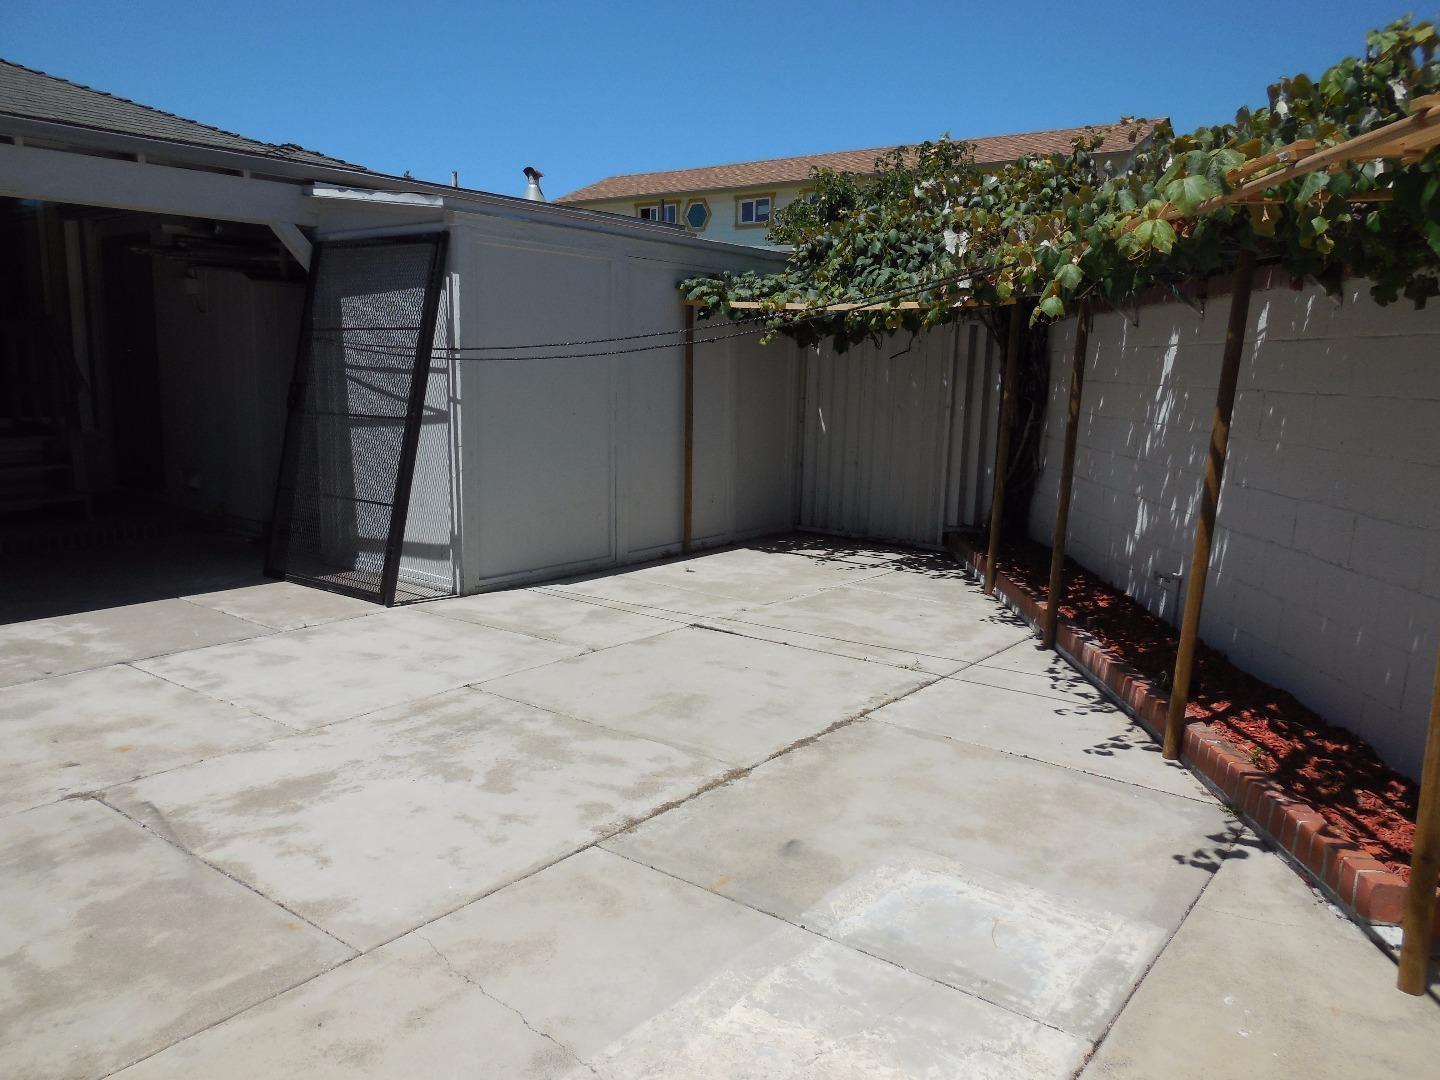 Additional photo for property listing at 1441 Broadway Avenue 1441 Broadway Avenue San Pablo, California 94806 United States